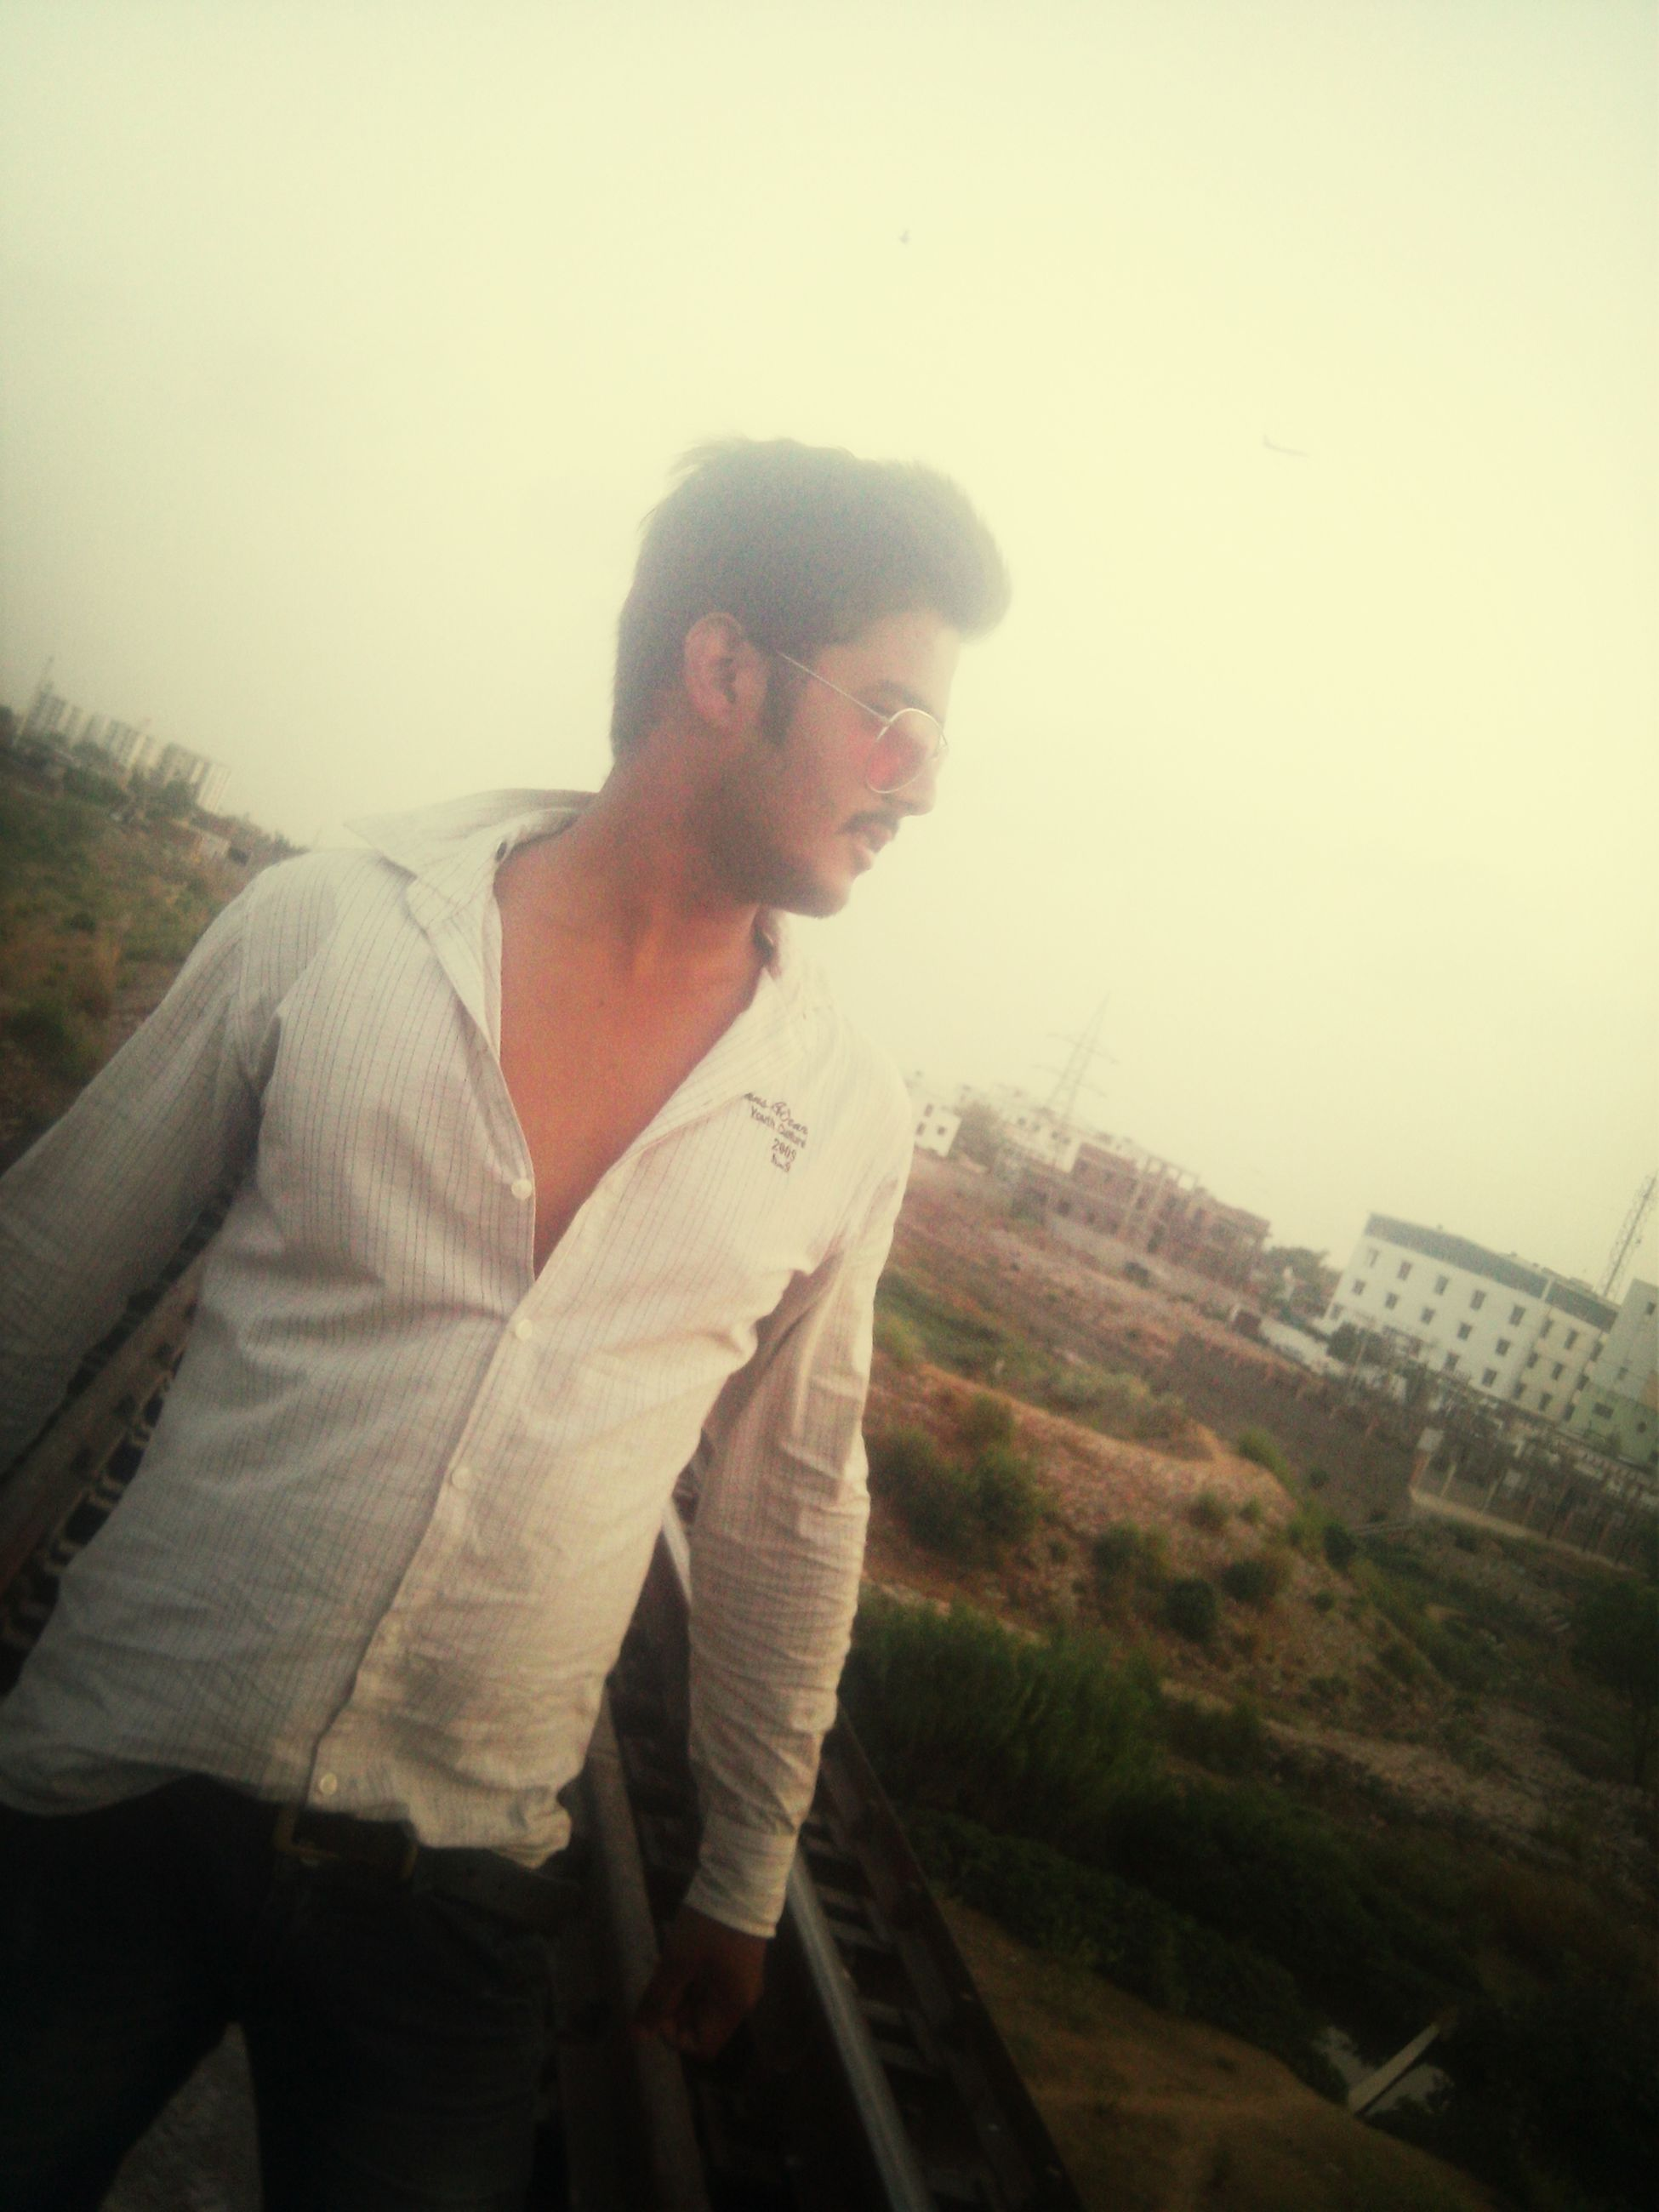 lifestyles, young adult, casual clothing, leisure activity, person, young men, three quarter length, standing, waist up, side view, warm clothing, looking away, fog, contemplation, front view, full length, mid adult